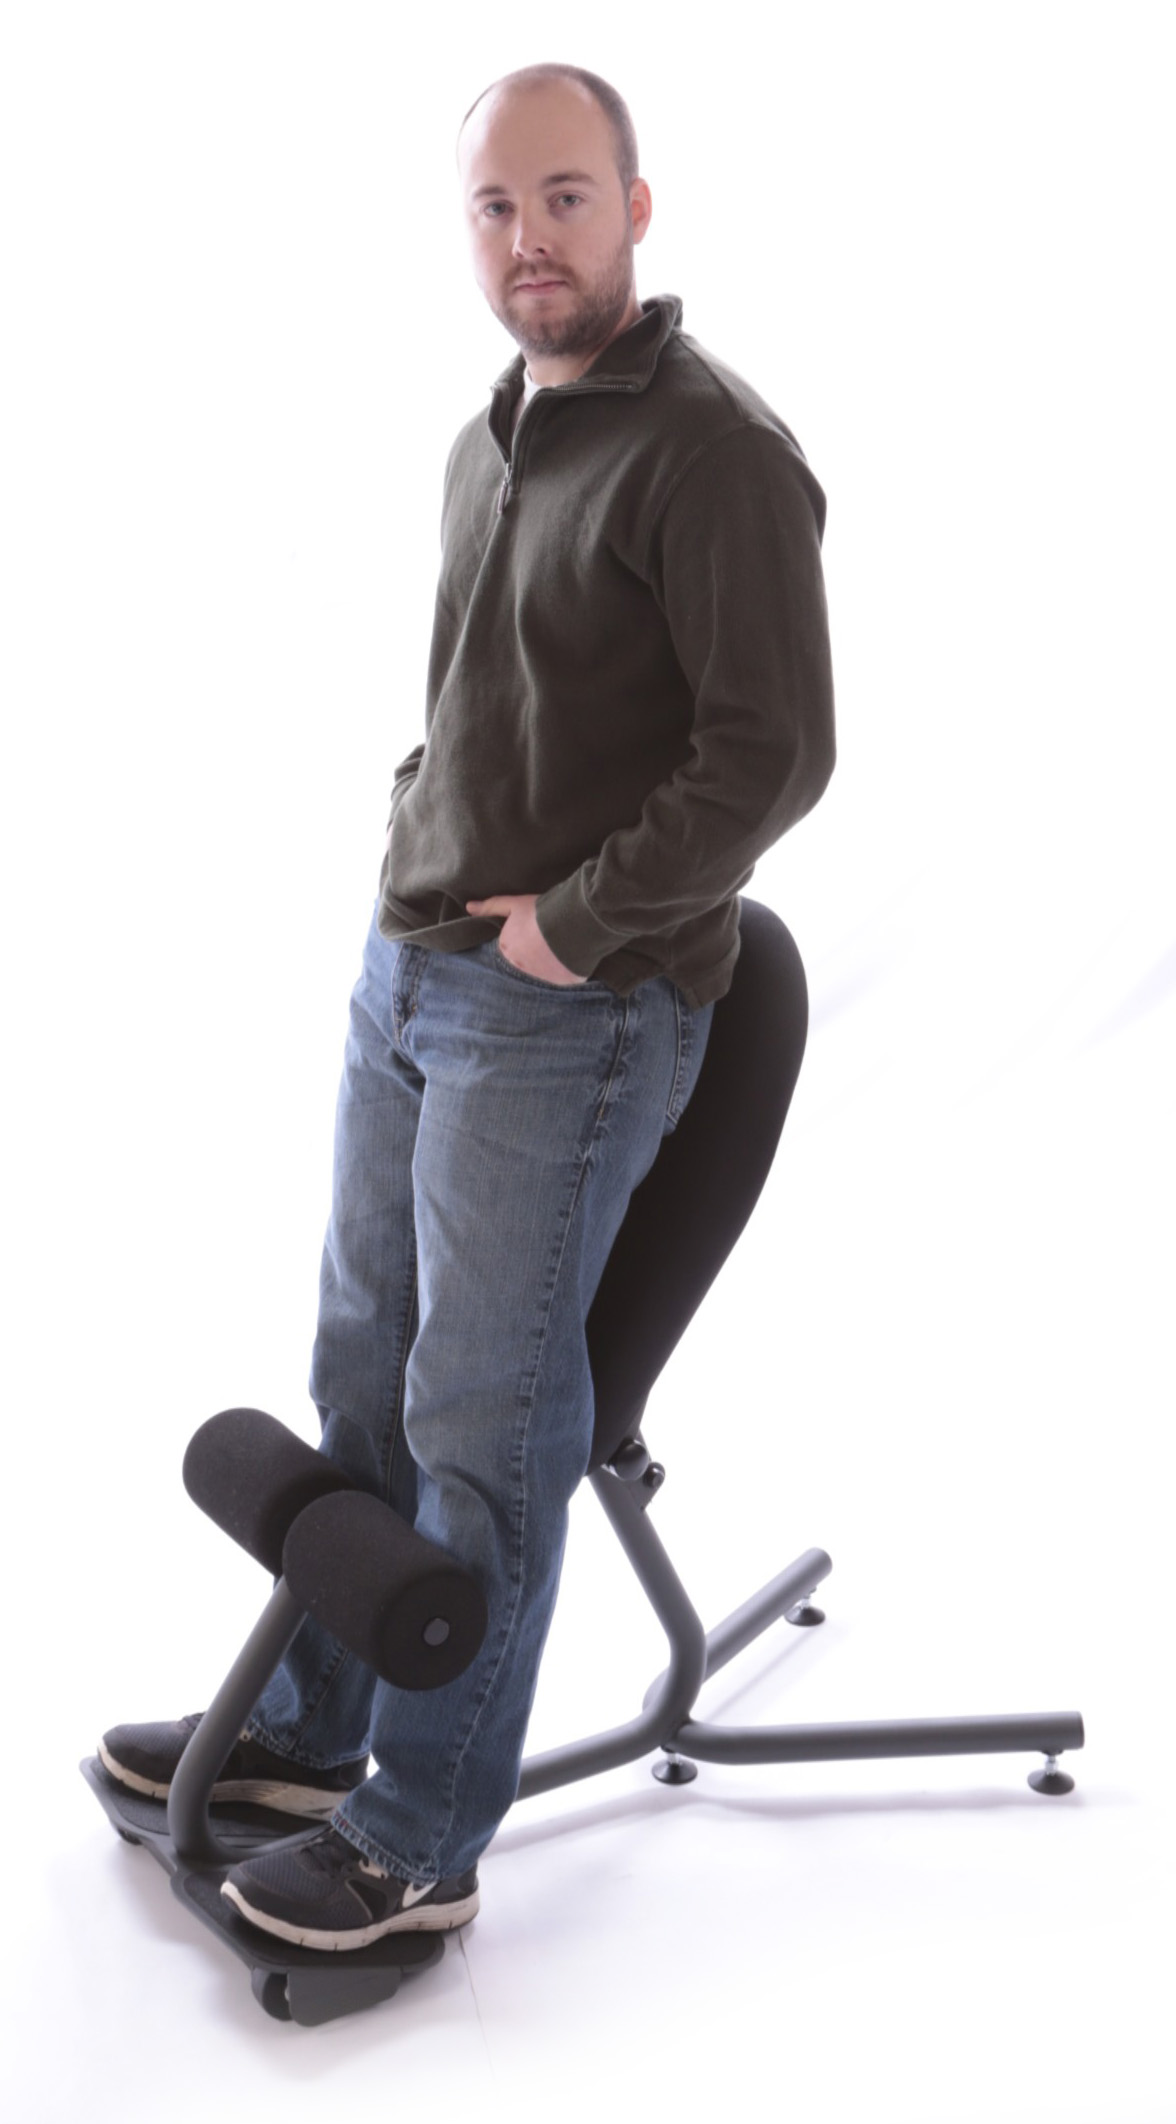 New Office Chair Promotes Active Movement at Work